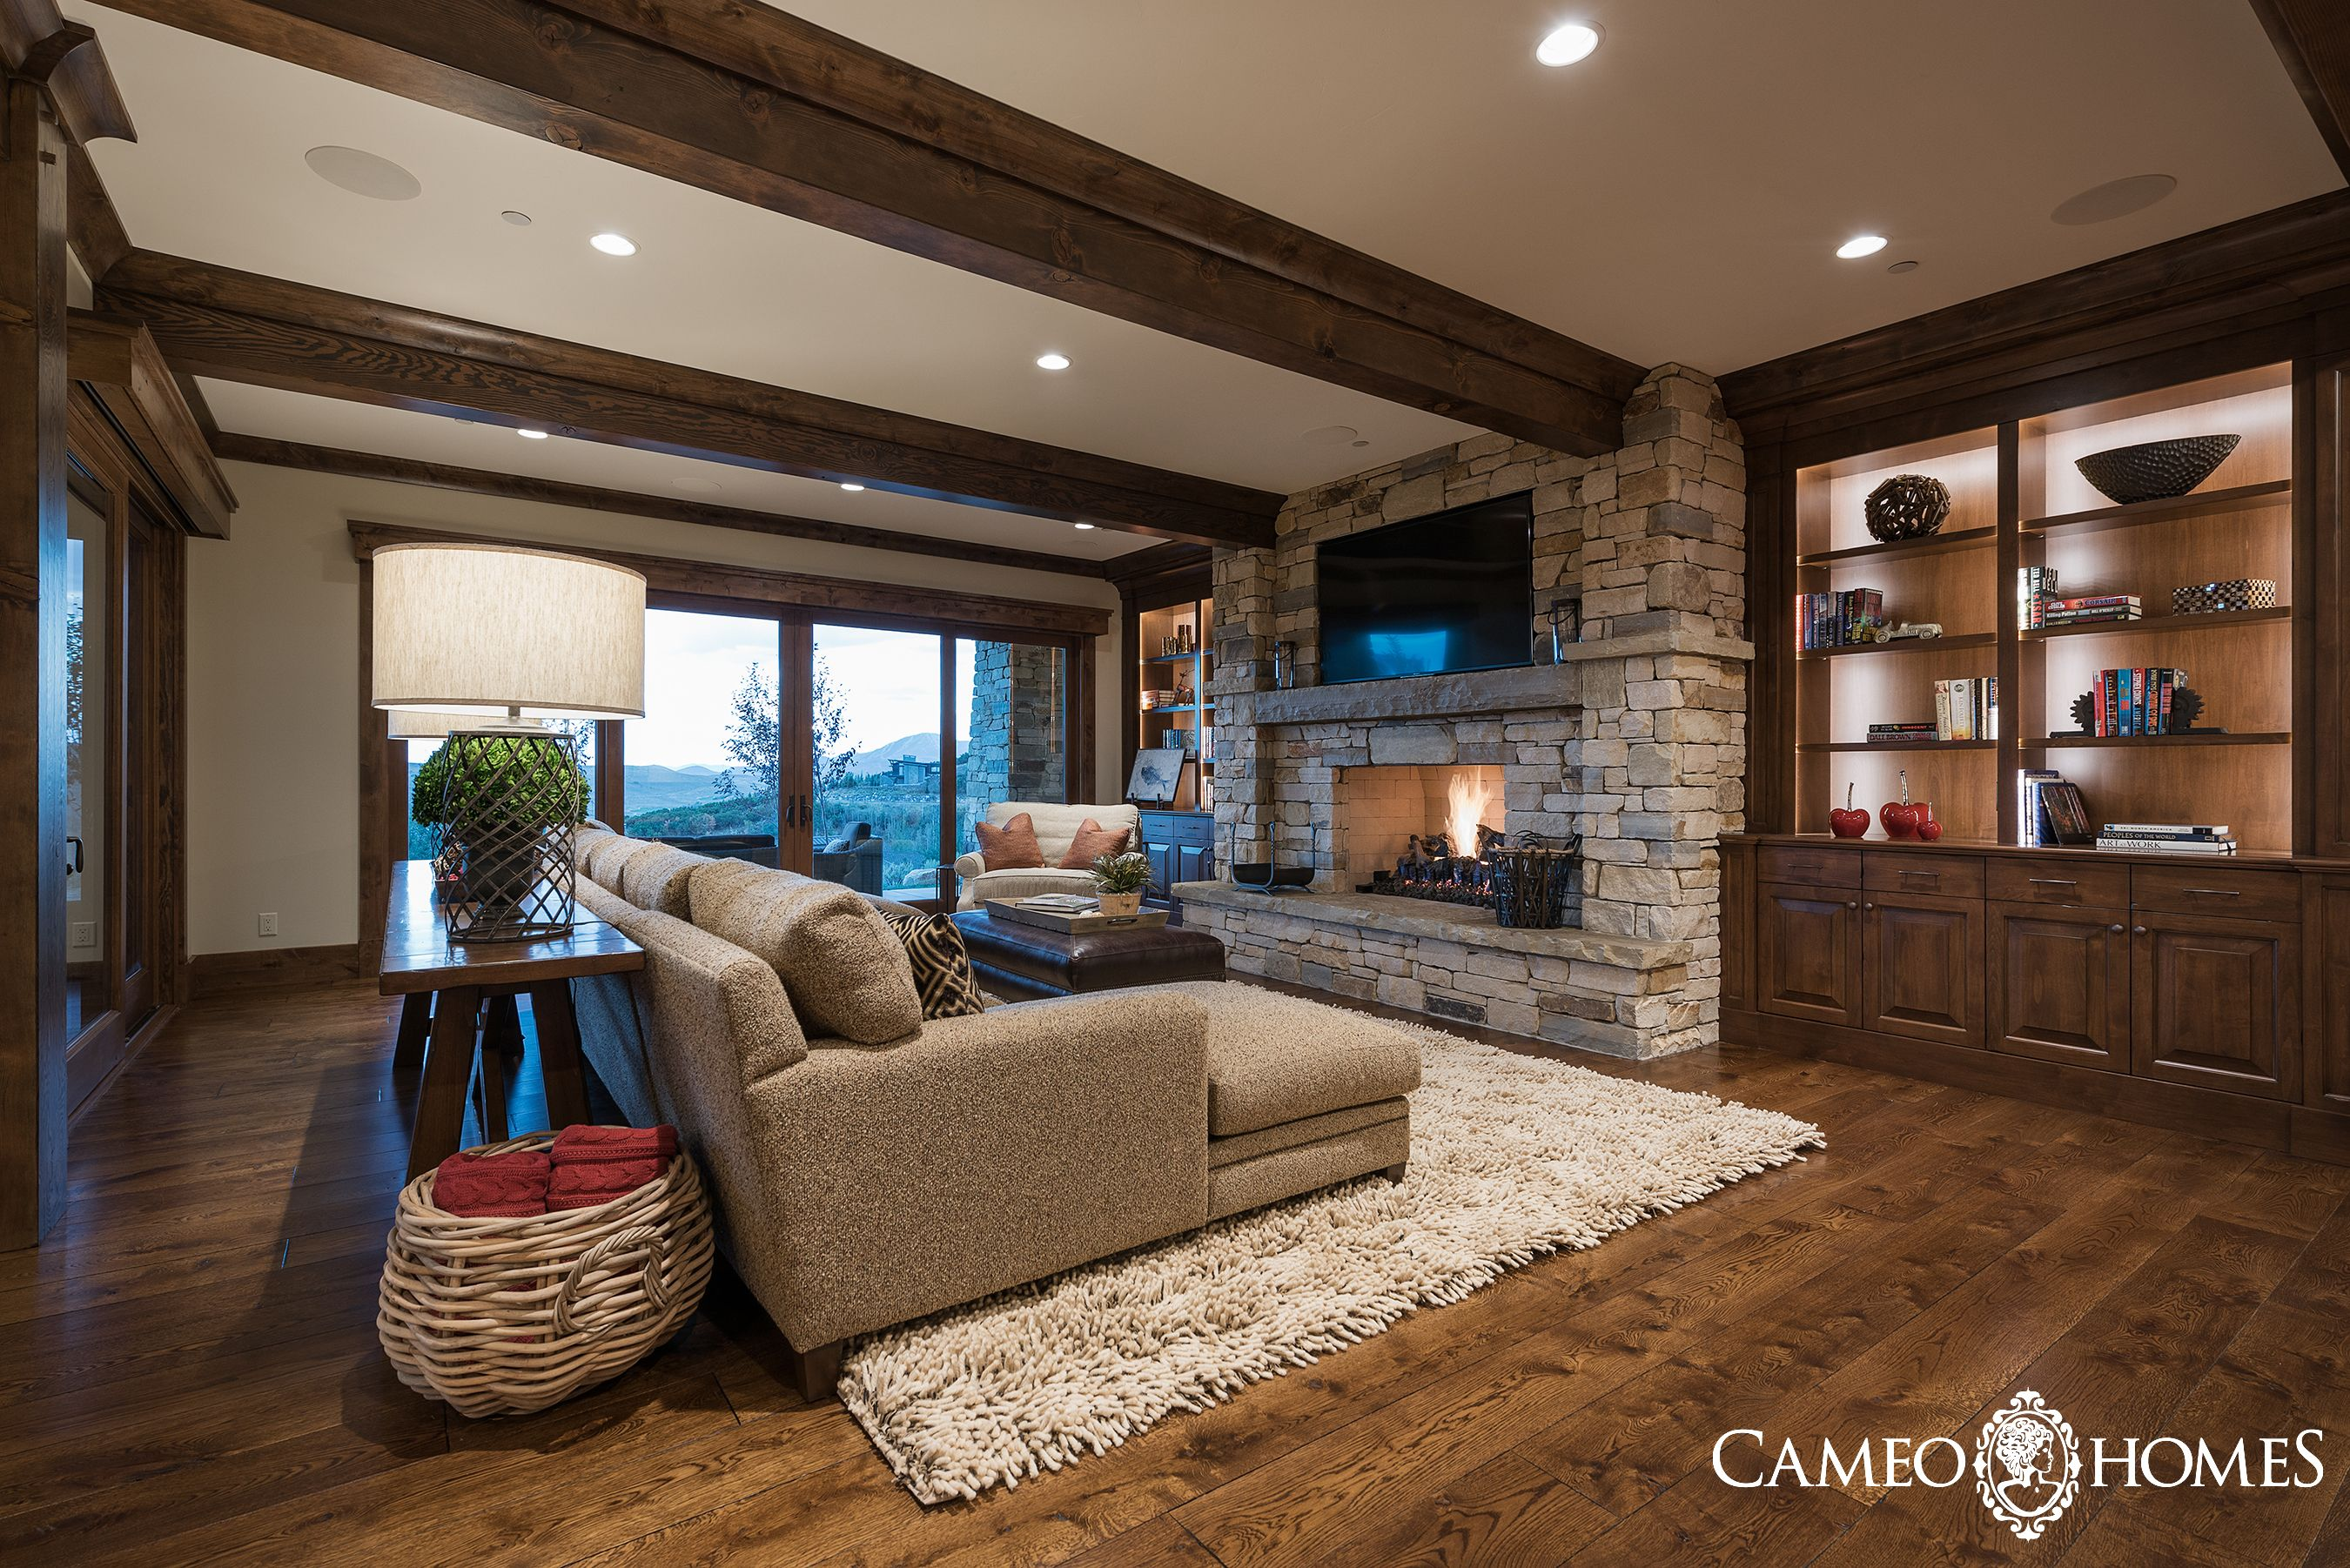 Basement Living Room In Promontory Park City Utah By Cameo Homes Inc Luxury